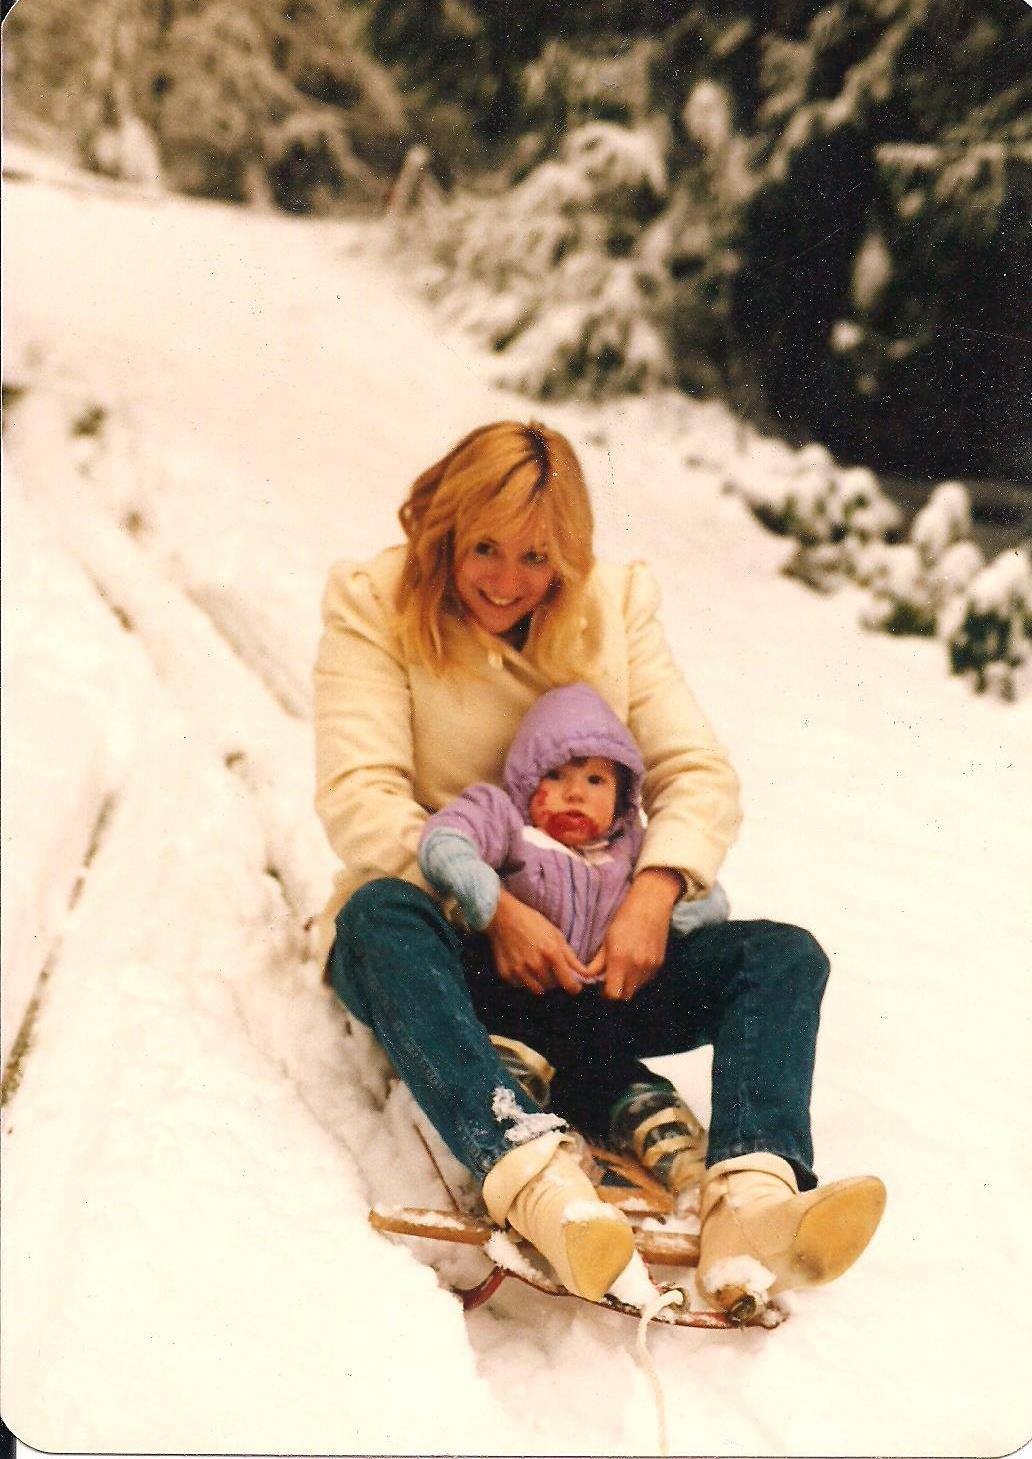 Pictured: Baby Stevie sledding with Mom